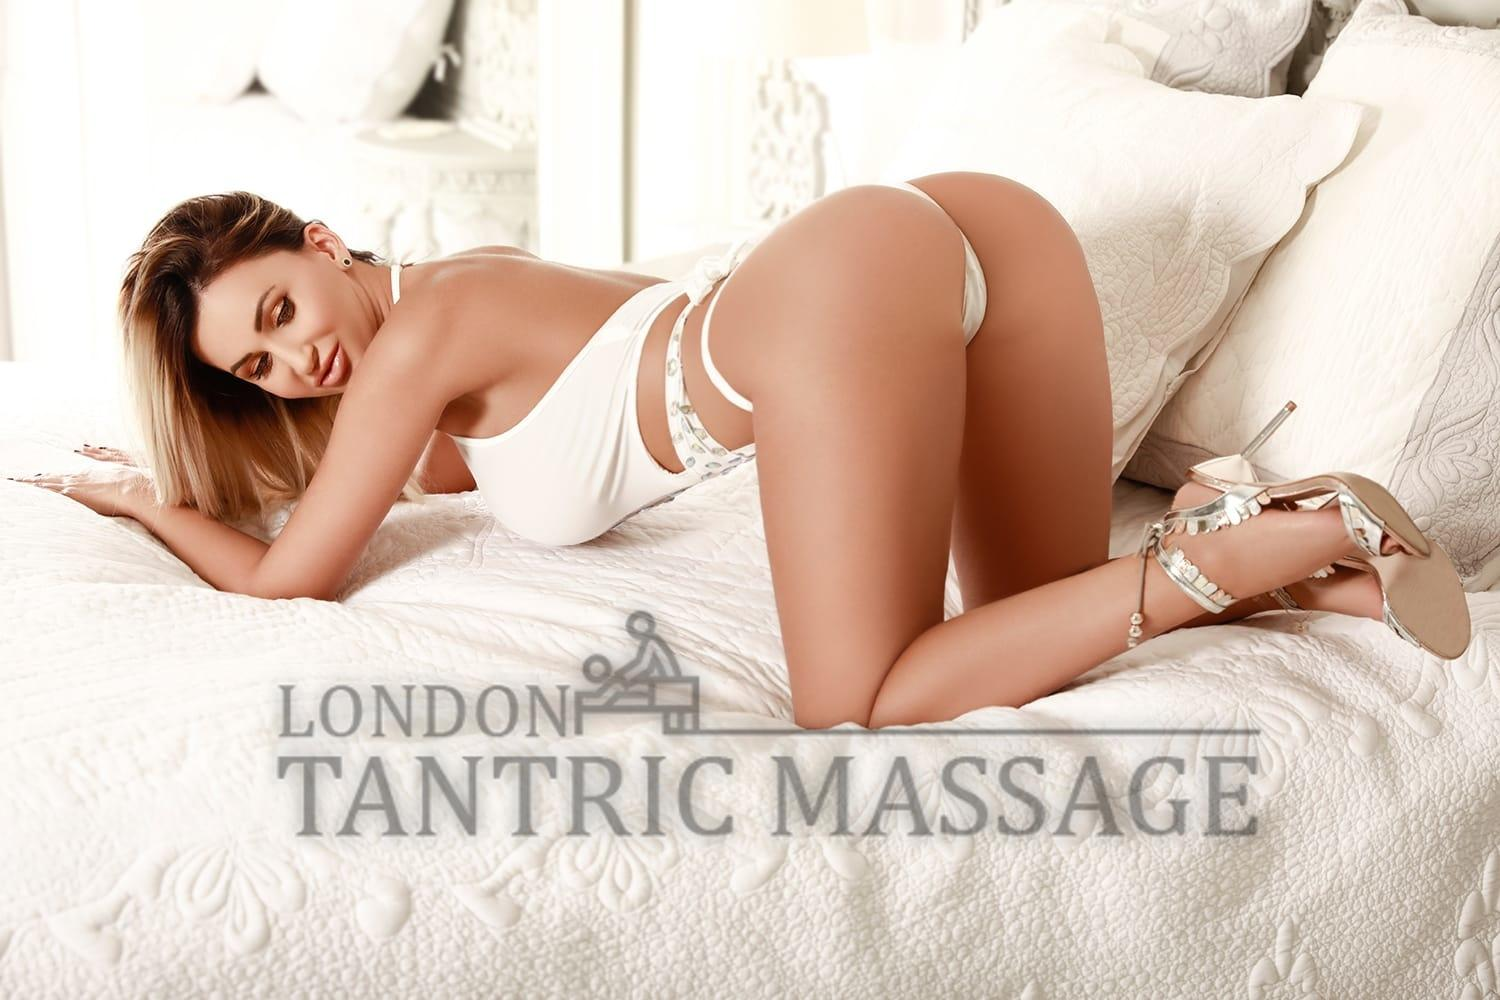 Ema from London Tantric Massage